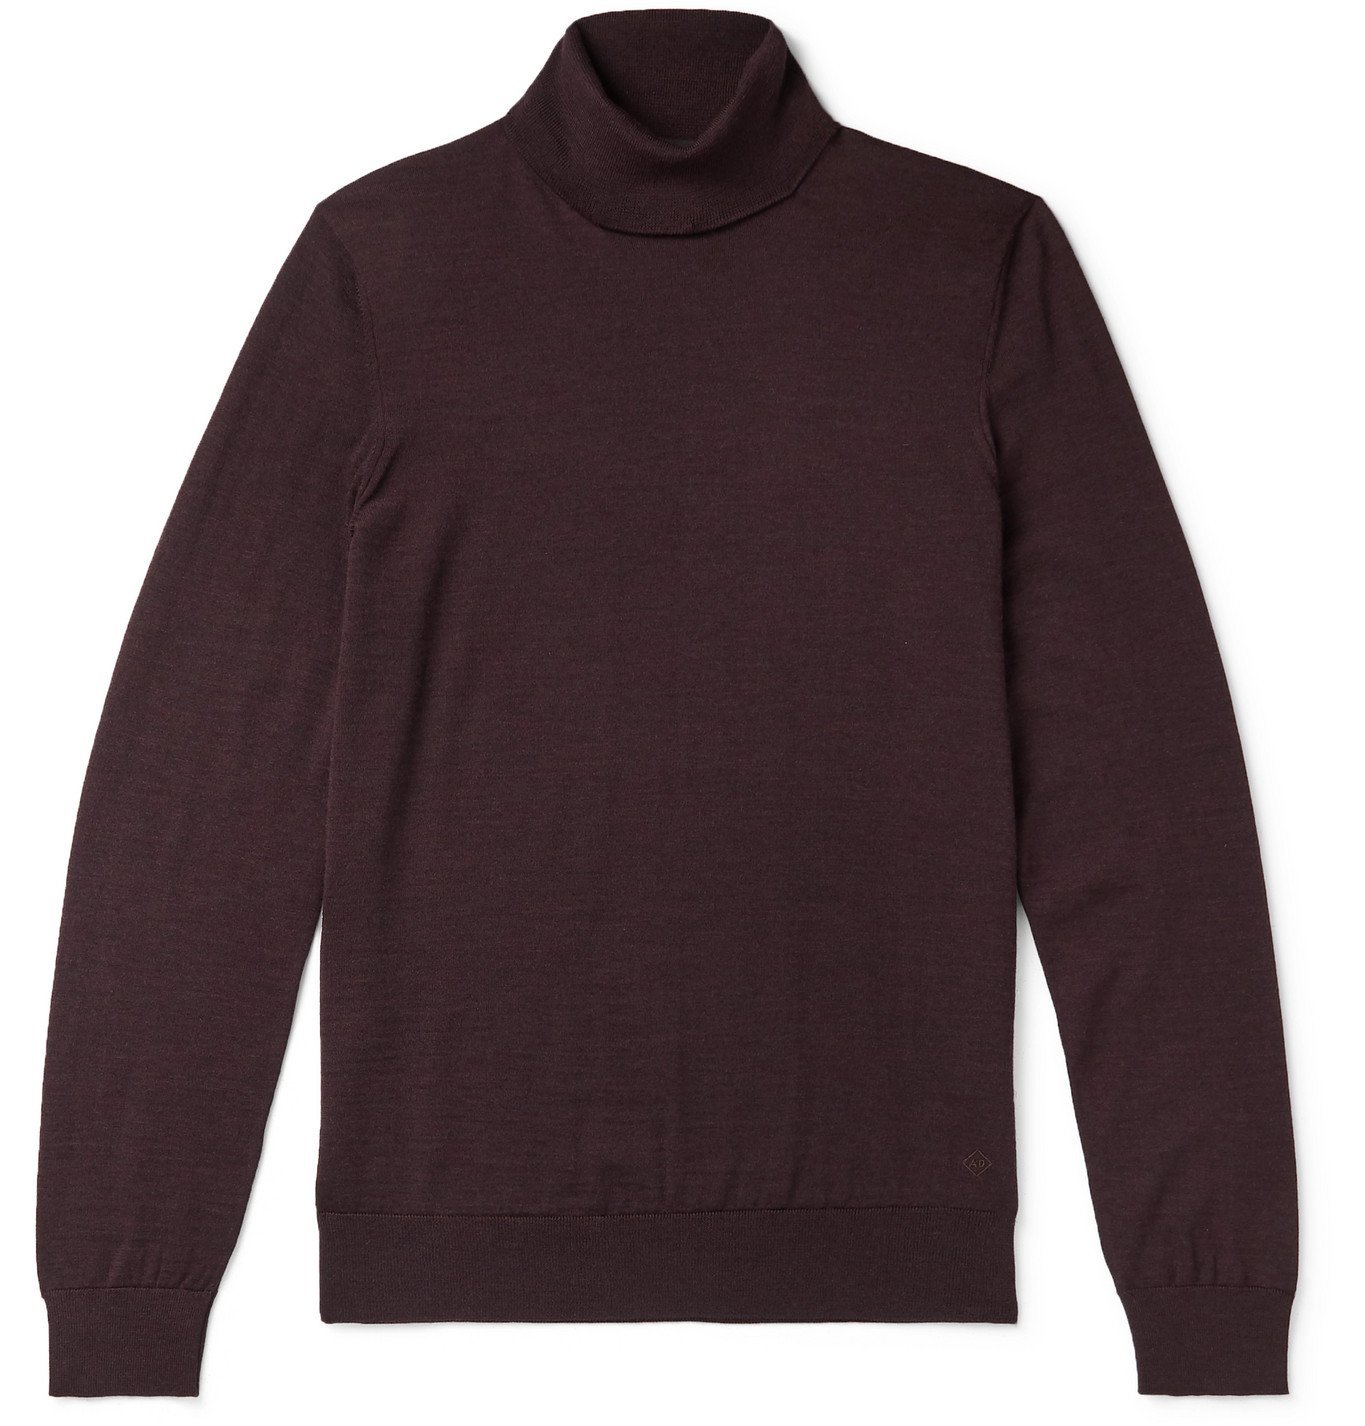 Dunhill - Slim-Fit Wool Rollneck Sweater - Burgundy